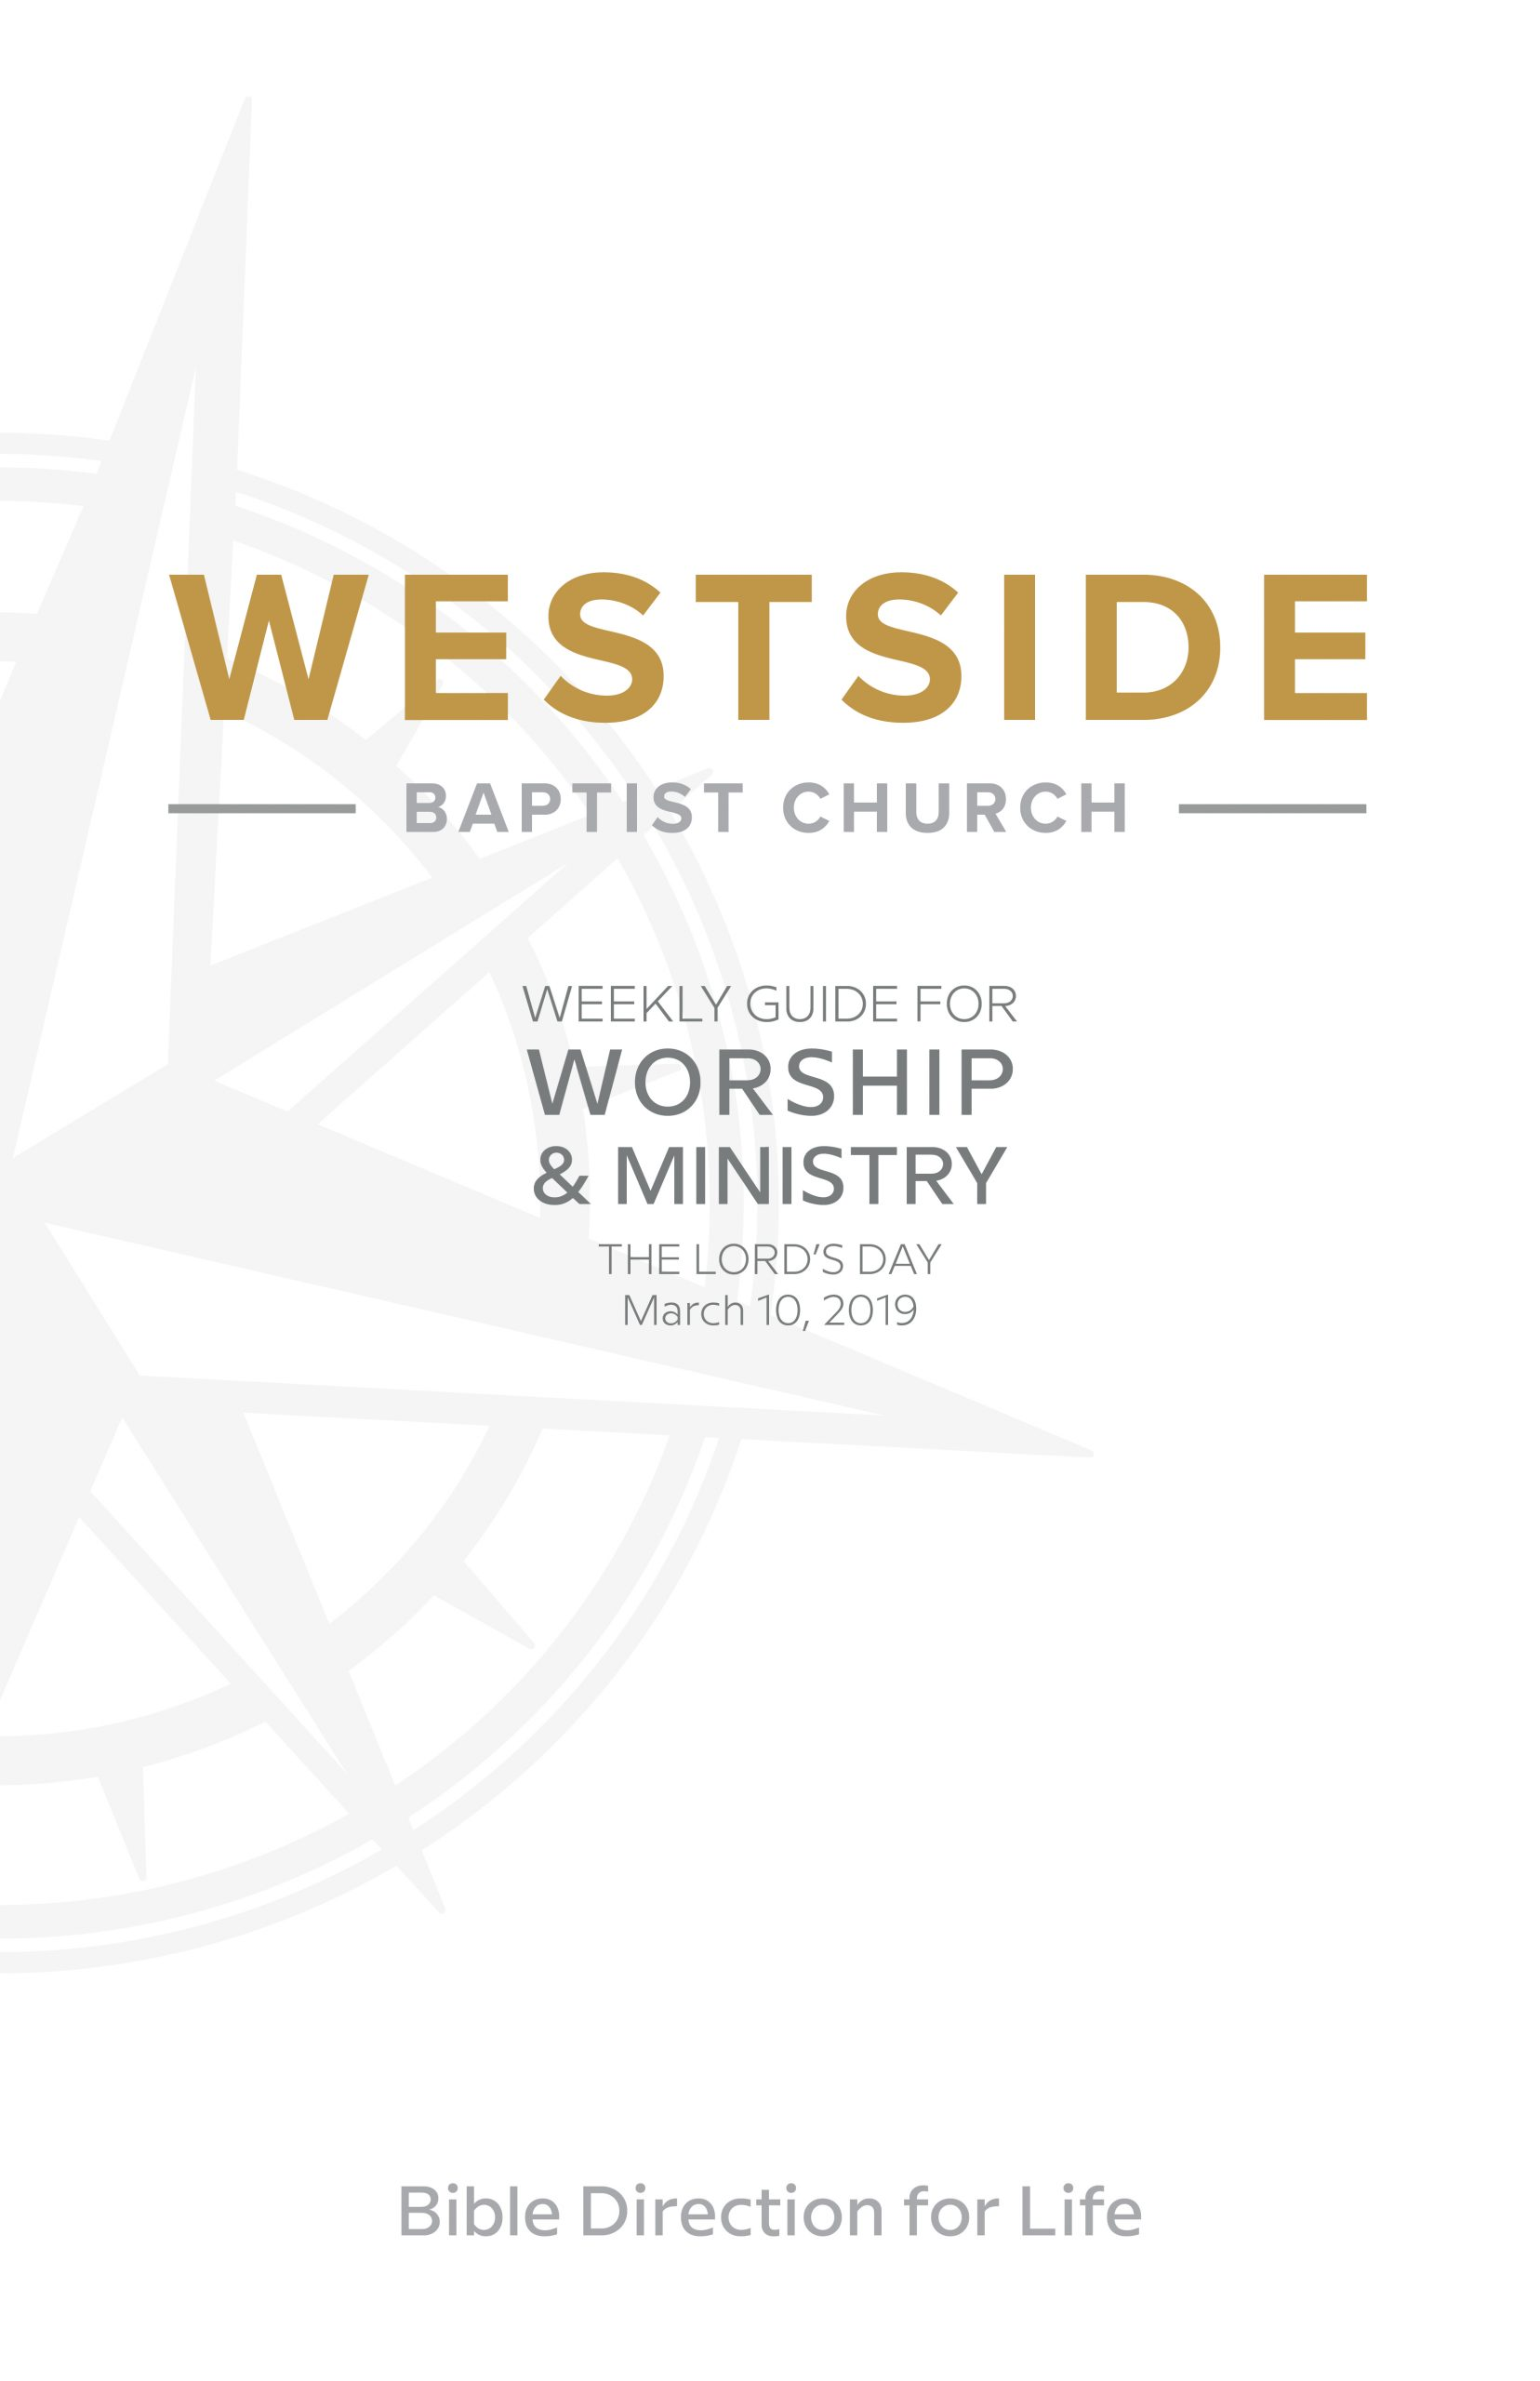 Weekly Guide for Worship and Ministry—March 10